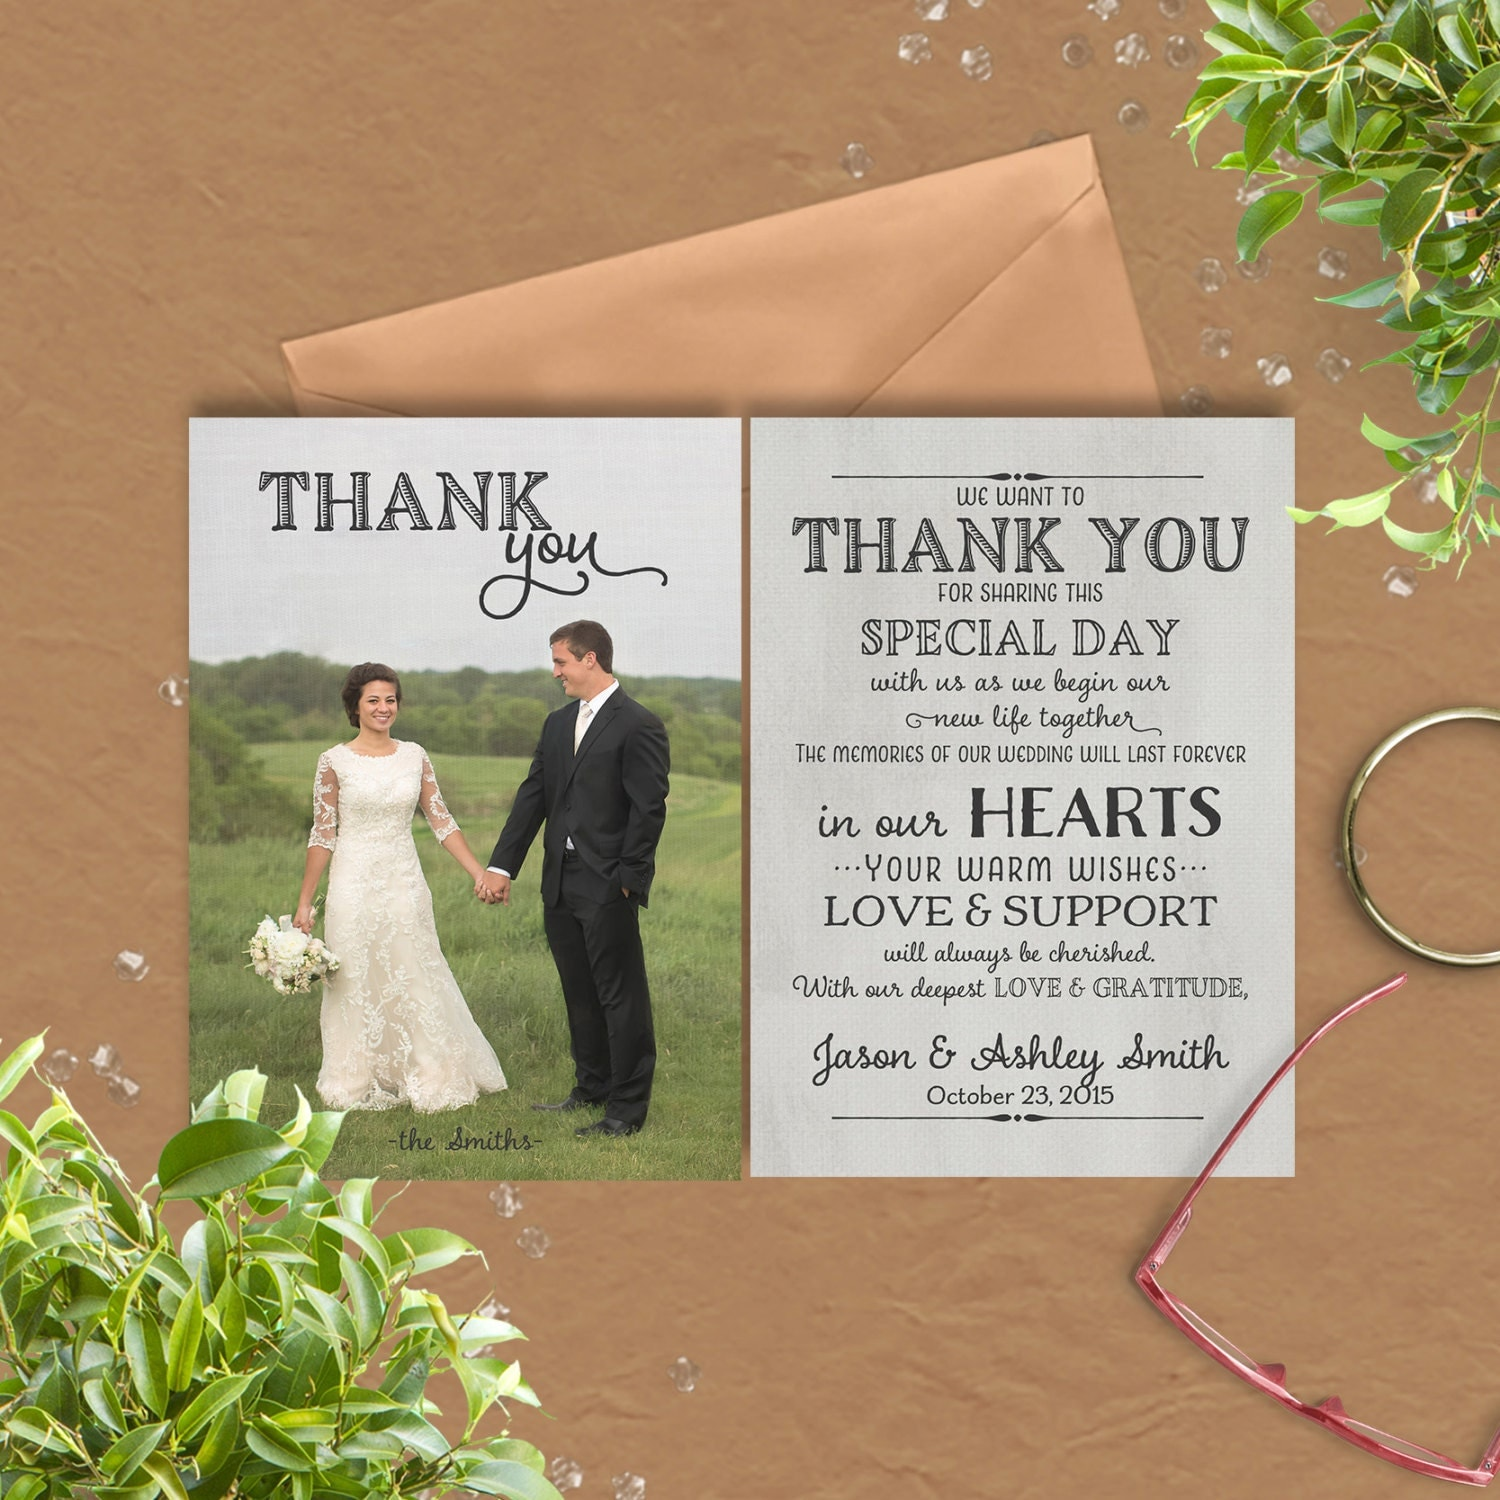 wedding thank you card with pre printed thank you message on